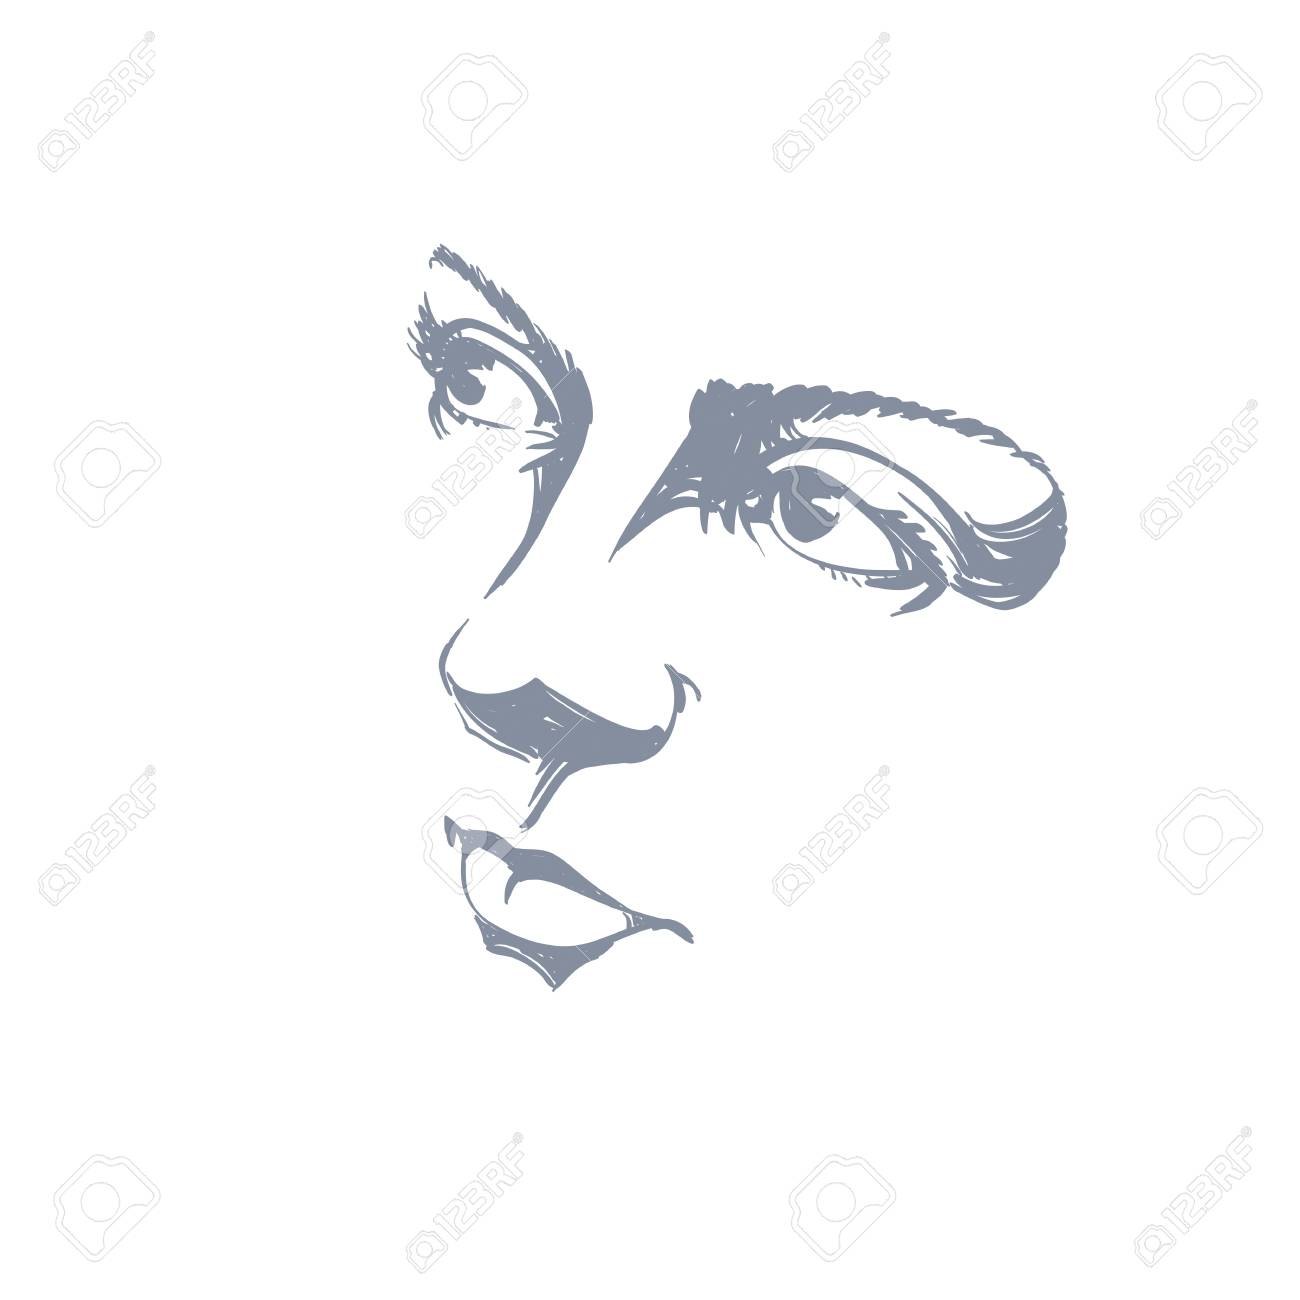 Facial expression, hand-drawn illustration of face of romantic